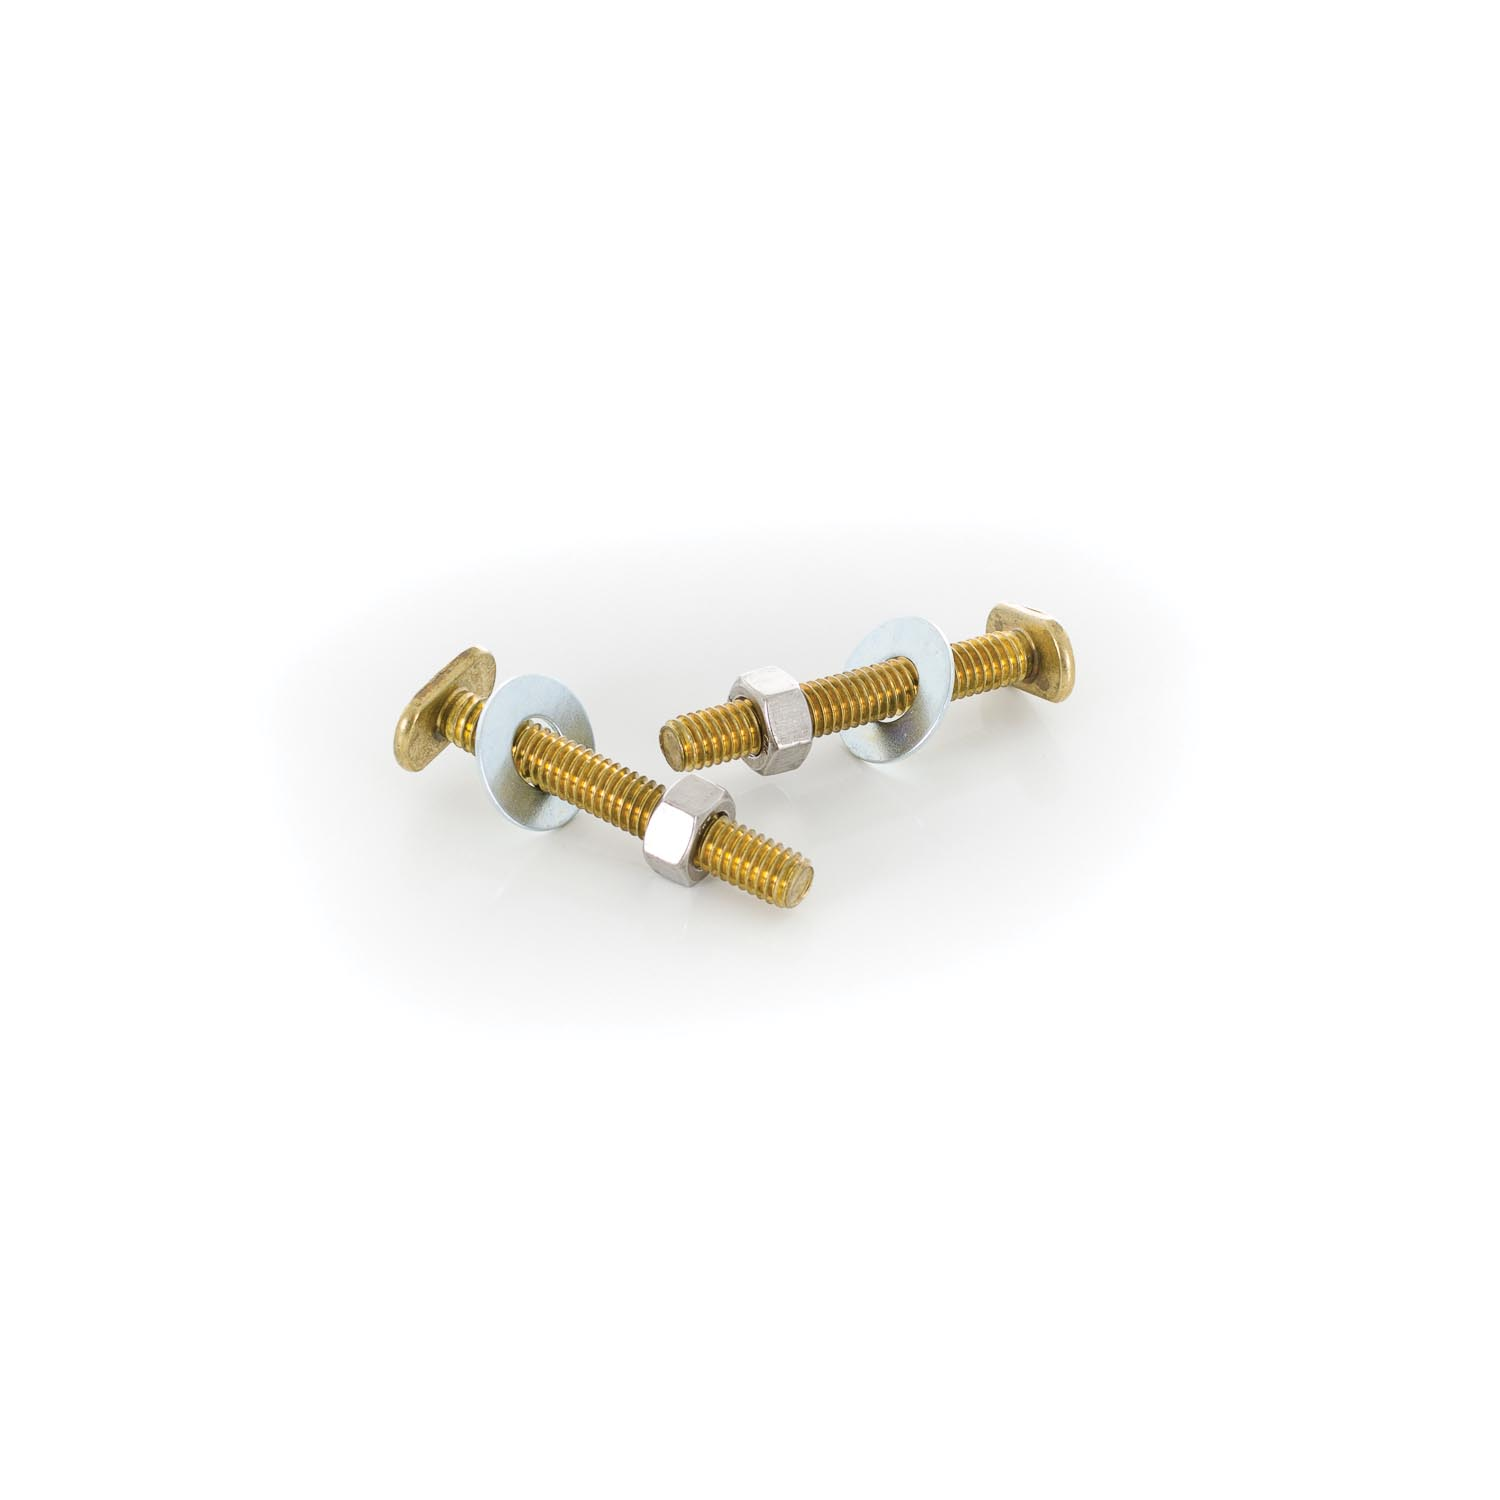 PASCO 82 Closet Bolt Set, 5/16 in x 2-1/4 in L Thread, Brass